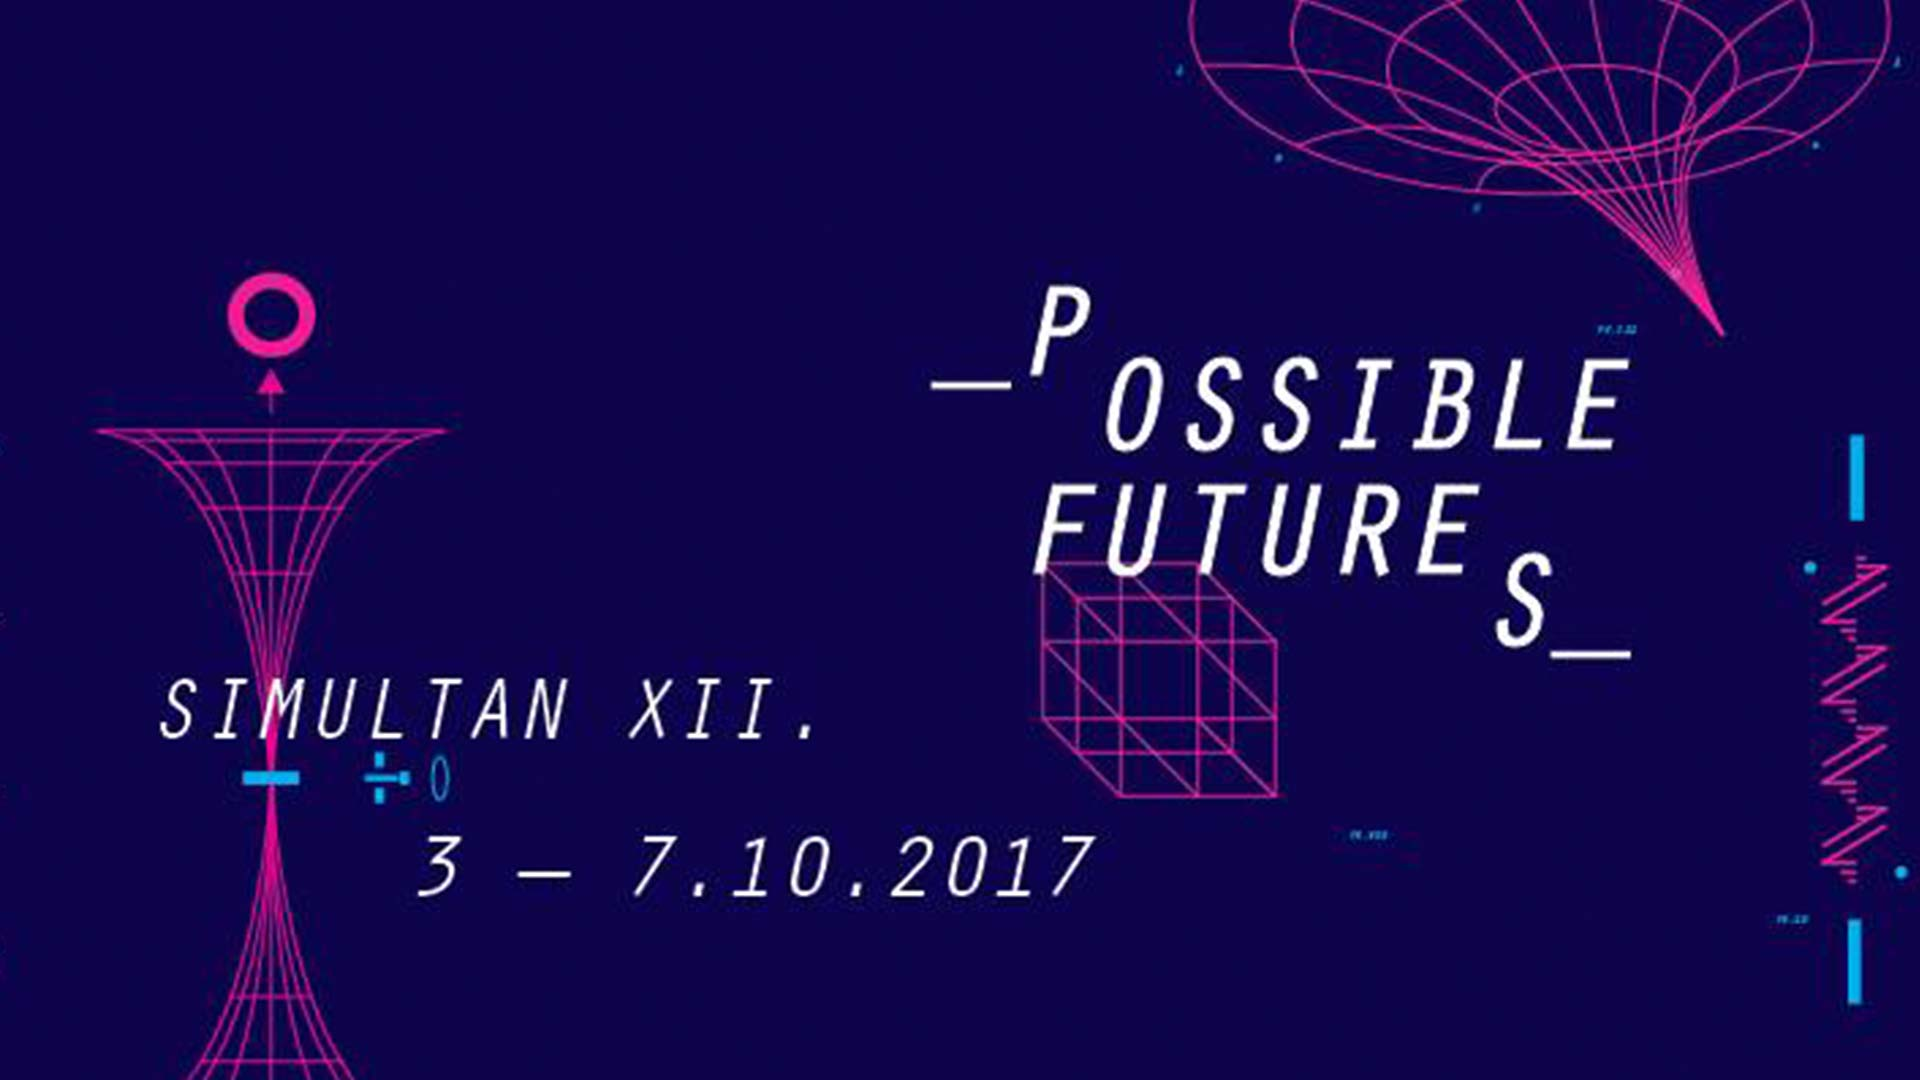 SIMULTAN FESTIVAL XII – POSSIBLE FUTURES3